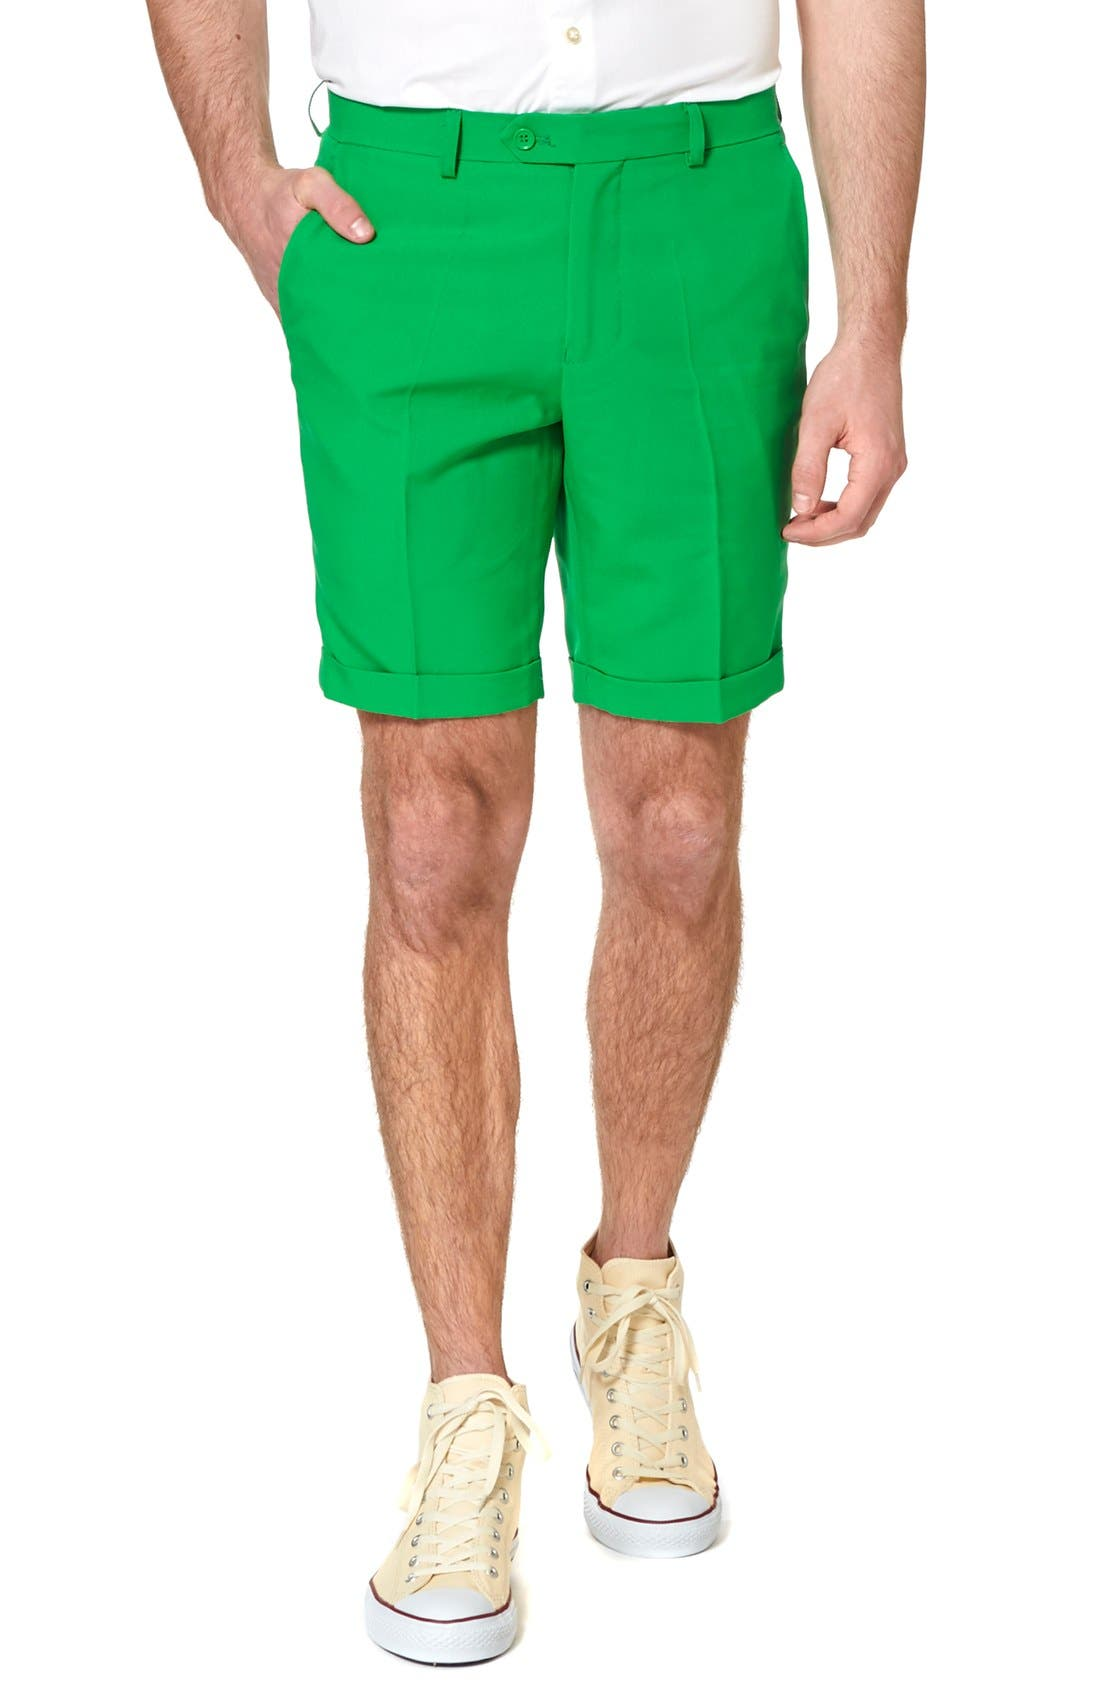 Alternate Image 3  - OppoSuits 'Summer Green & Gold' Trim Fit Short Suit with Tie